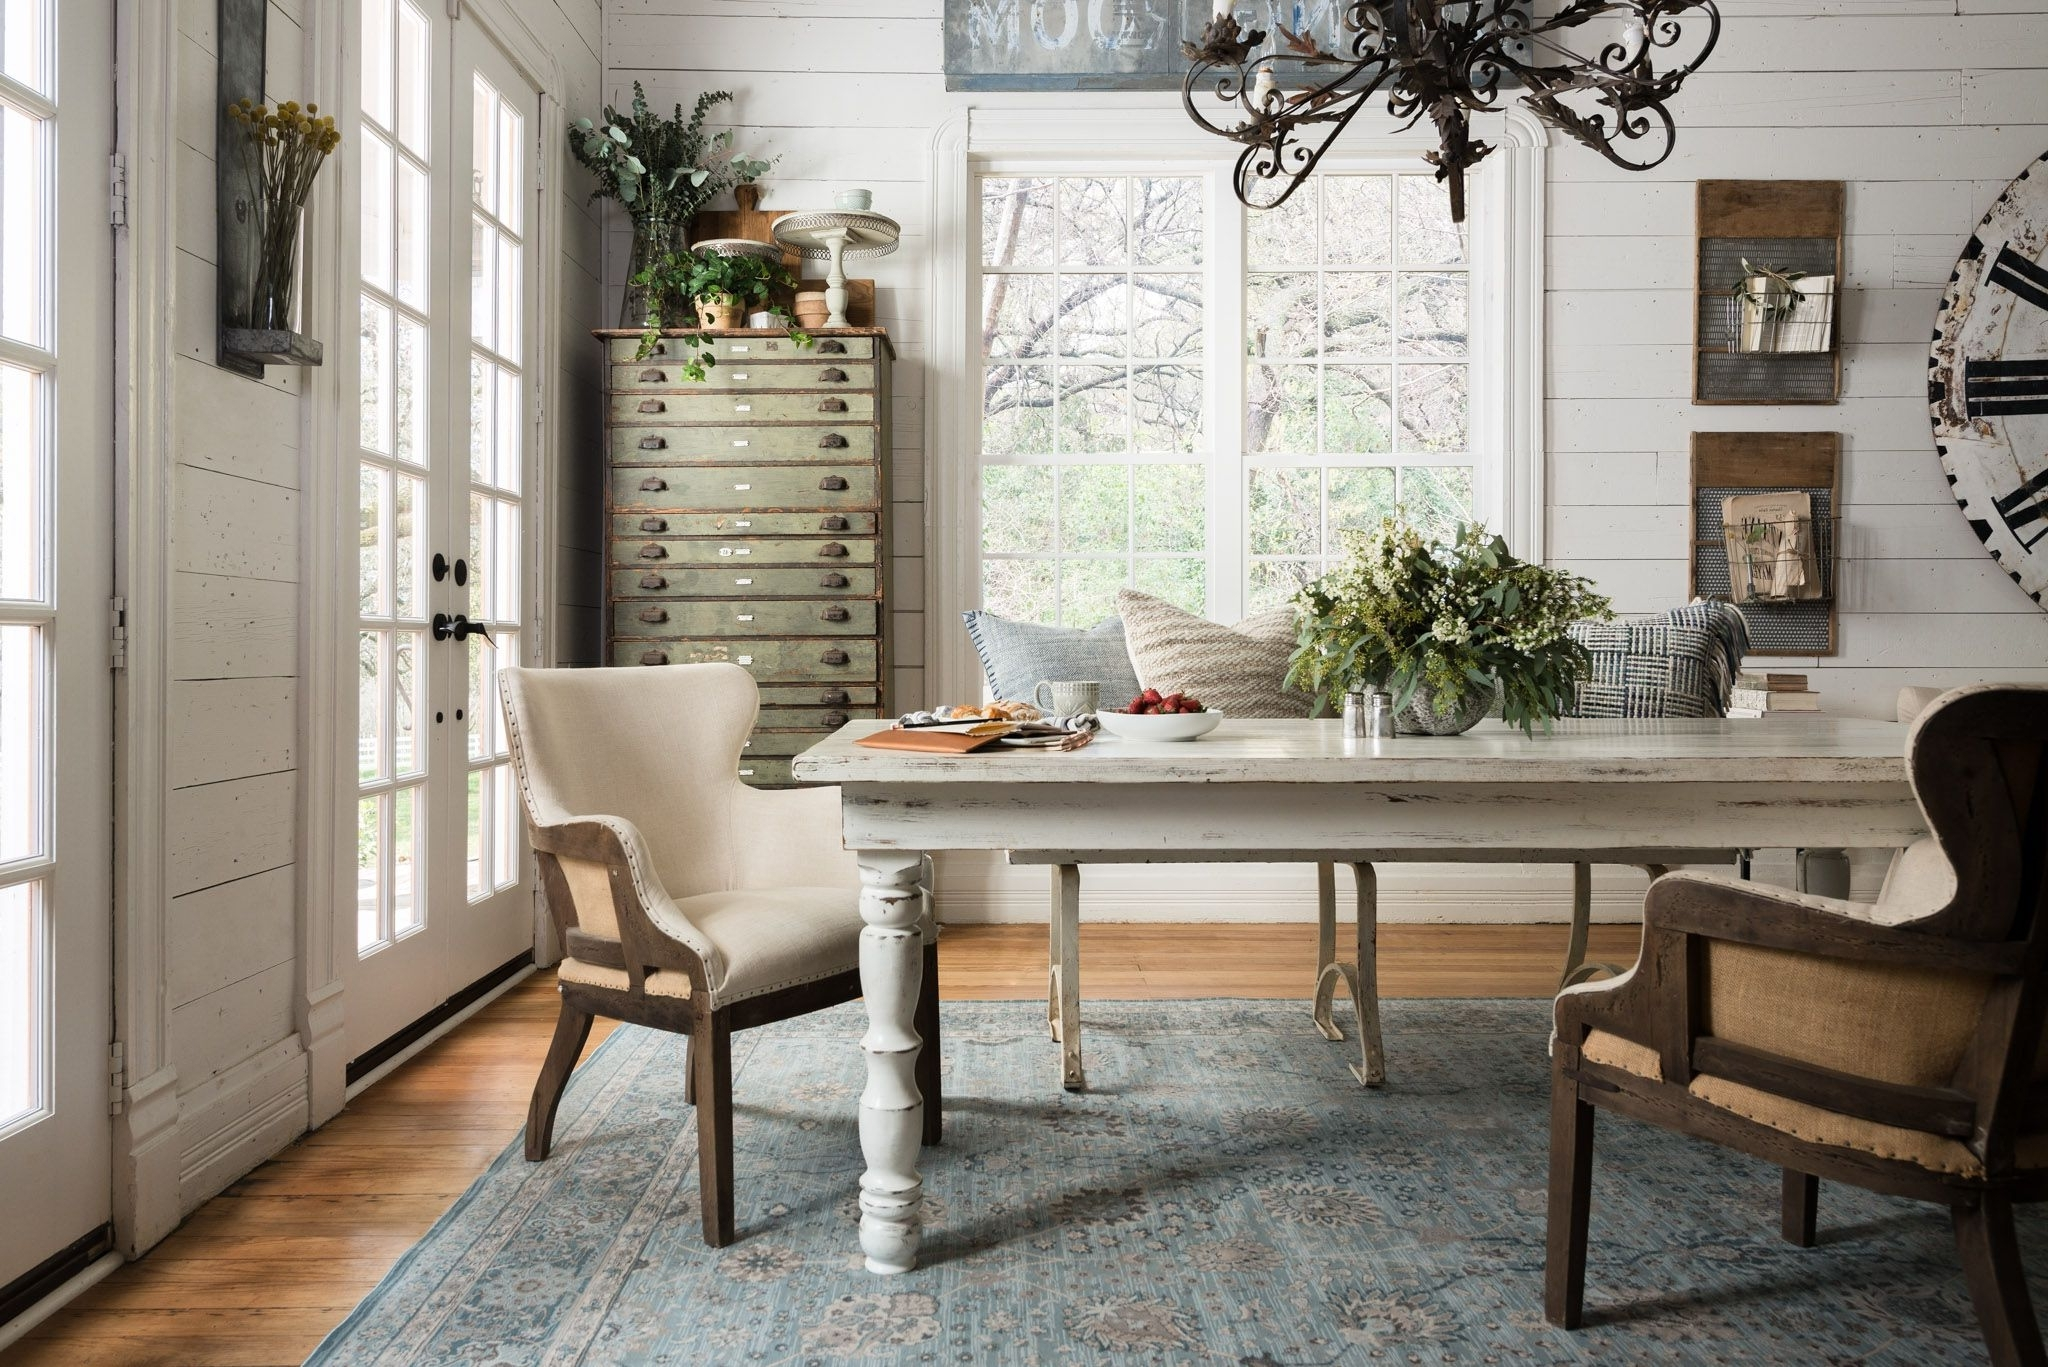 Joanna Gaines' Dining Room Featuring The Magnolia Home Ella 10+ Joanna Gaines Dining Room Decorating Ideas Inspirations